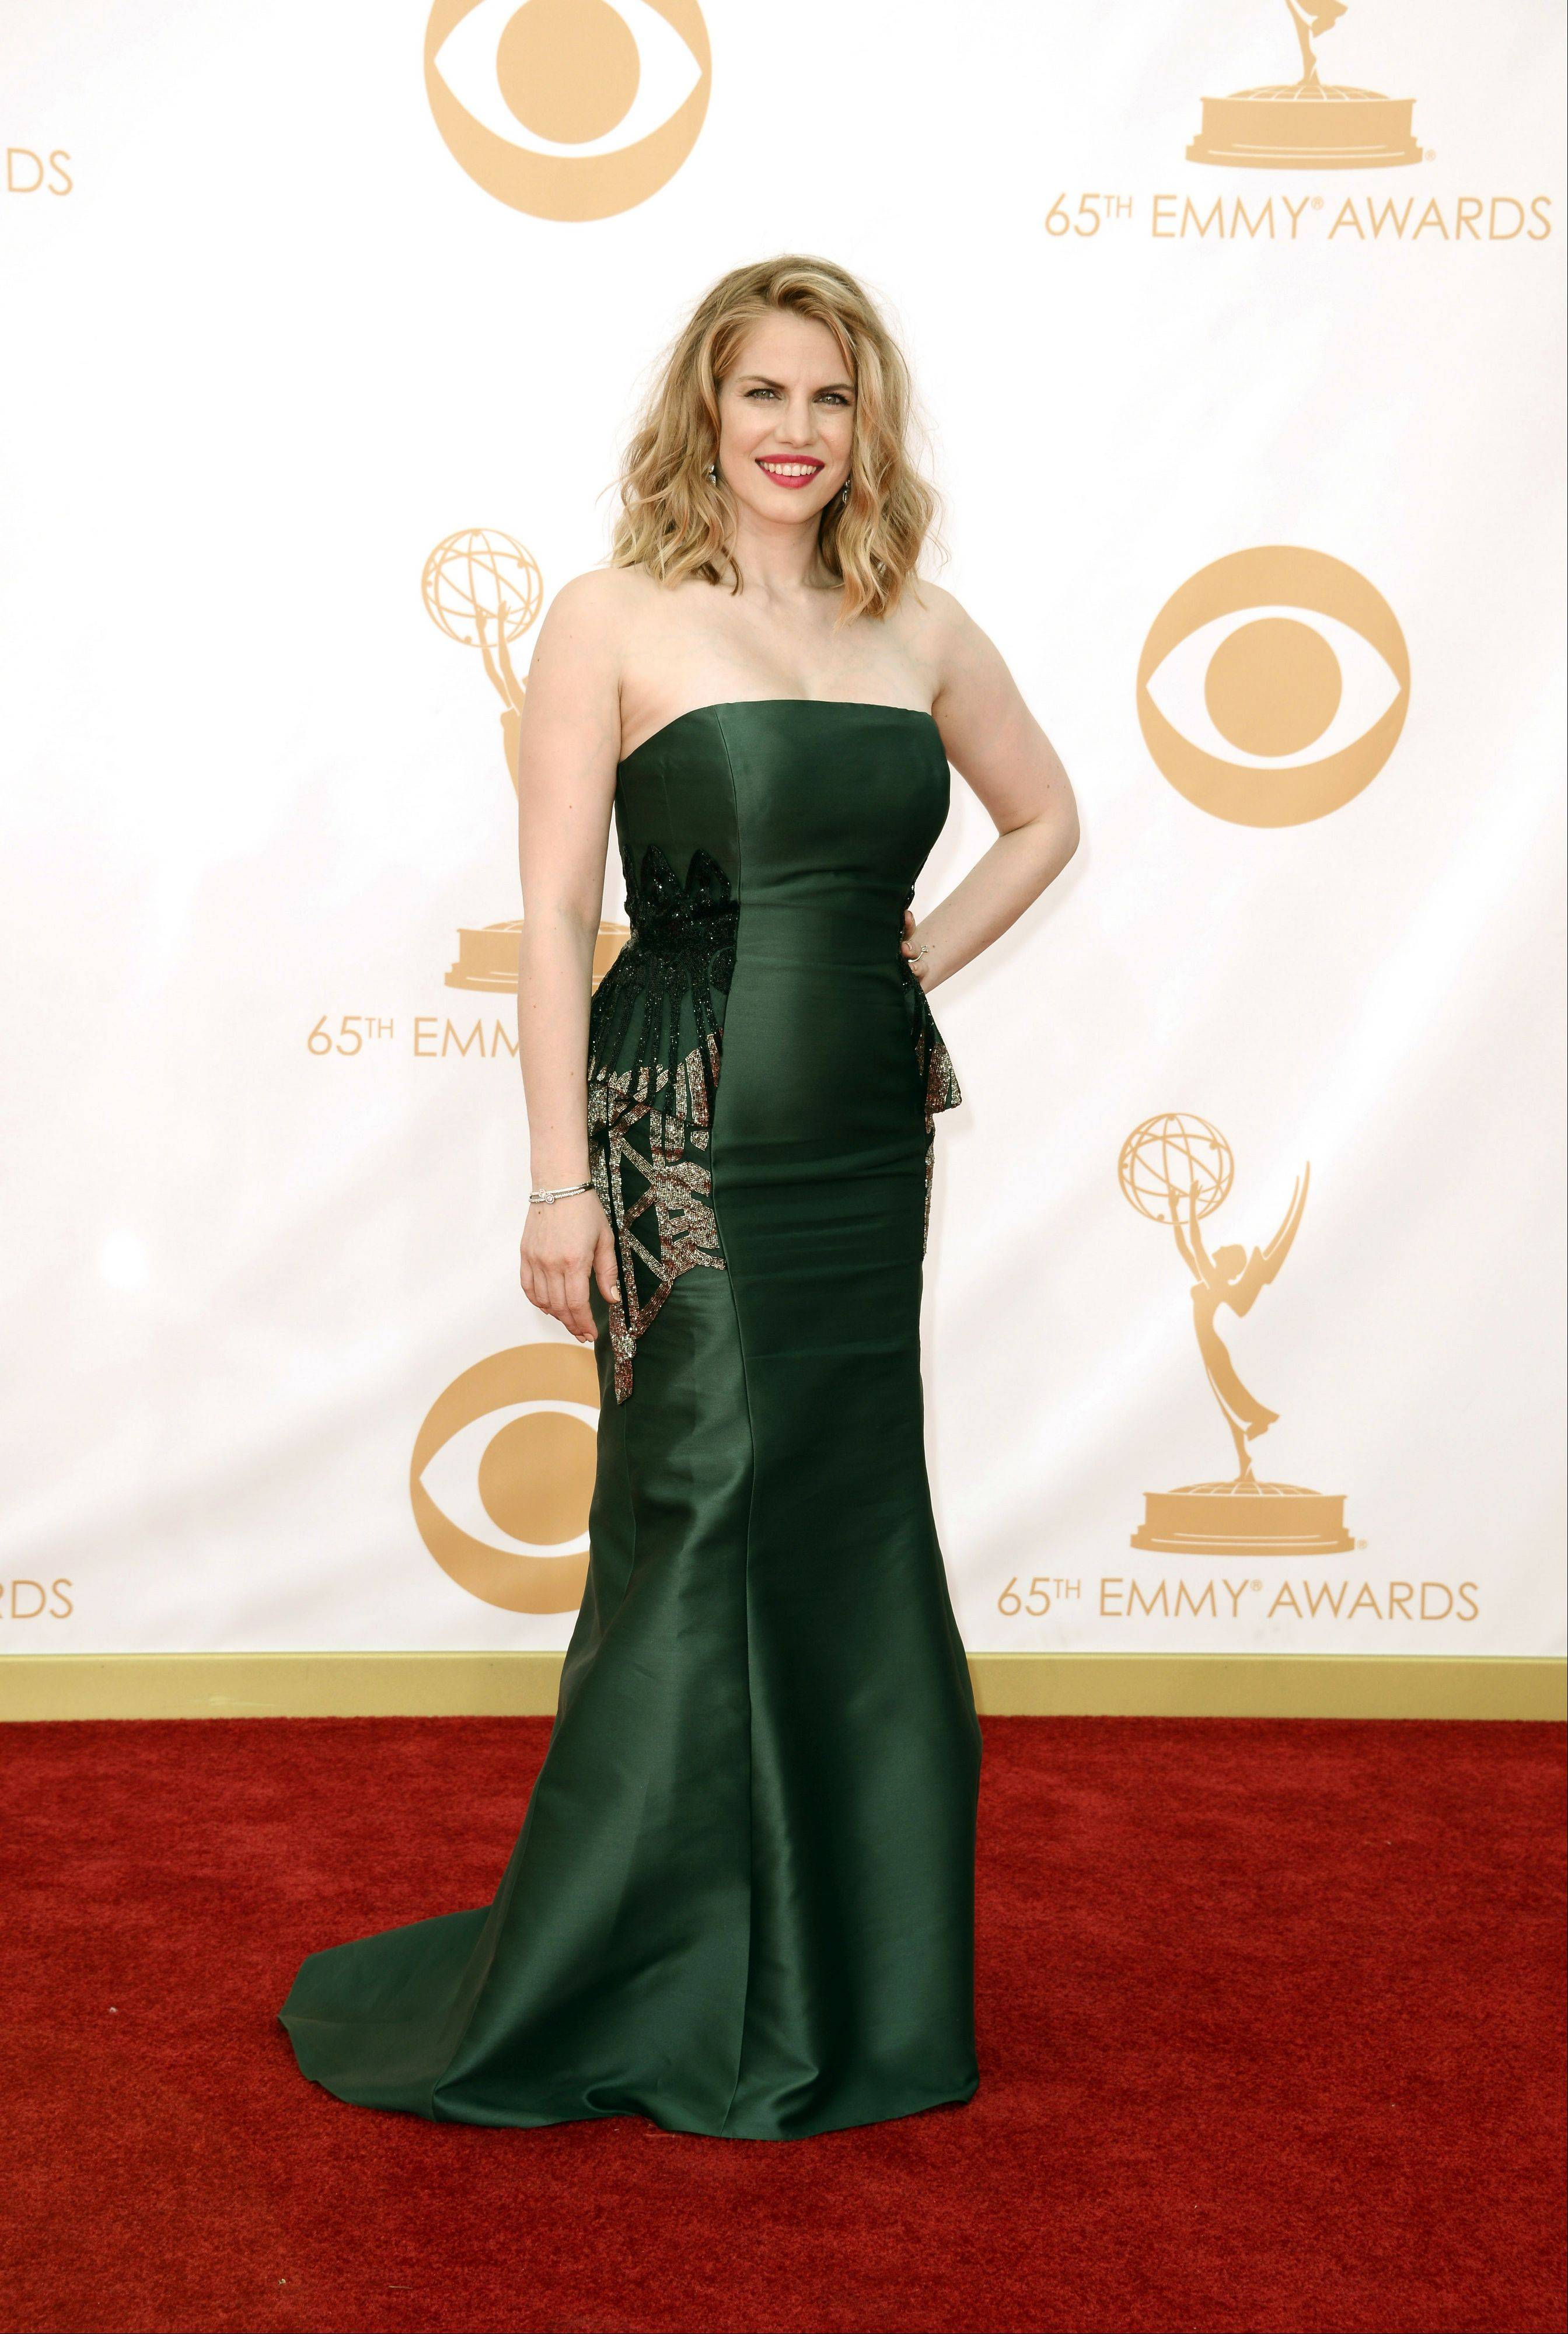 Anna Chlumsky, wearing Badgley Mischka, arrives at the 65th Primetime Emmy Awards at Nokia Theatre Sept. 22. The Broadview native was nominated for Outstanding Supporting Actress in a Comedy Series.